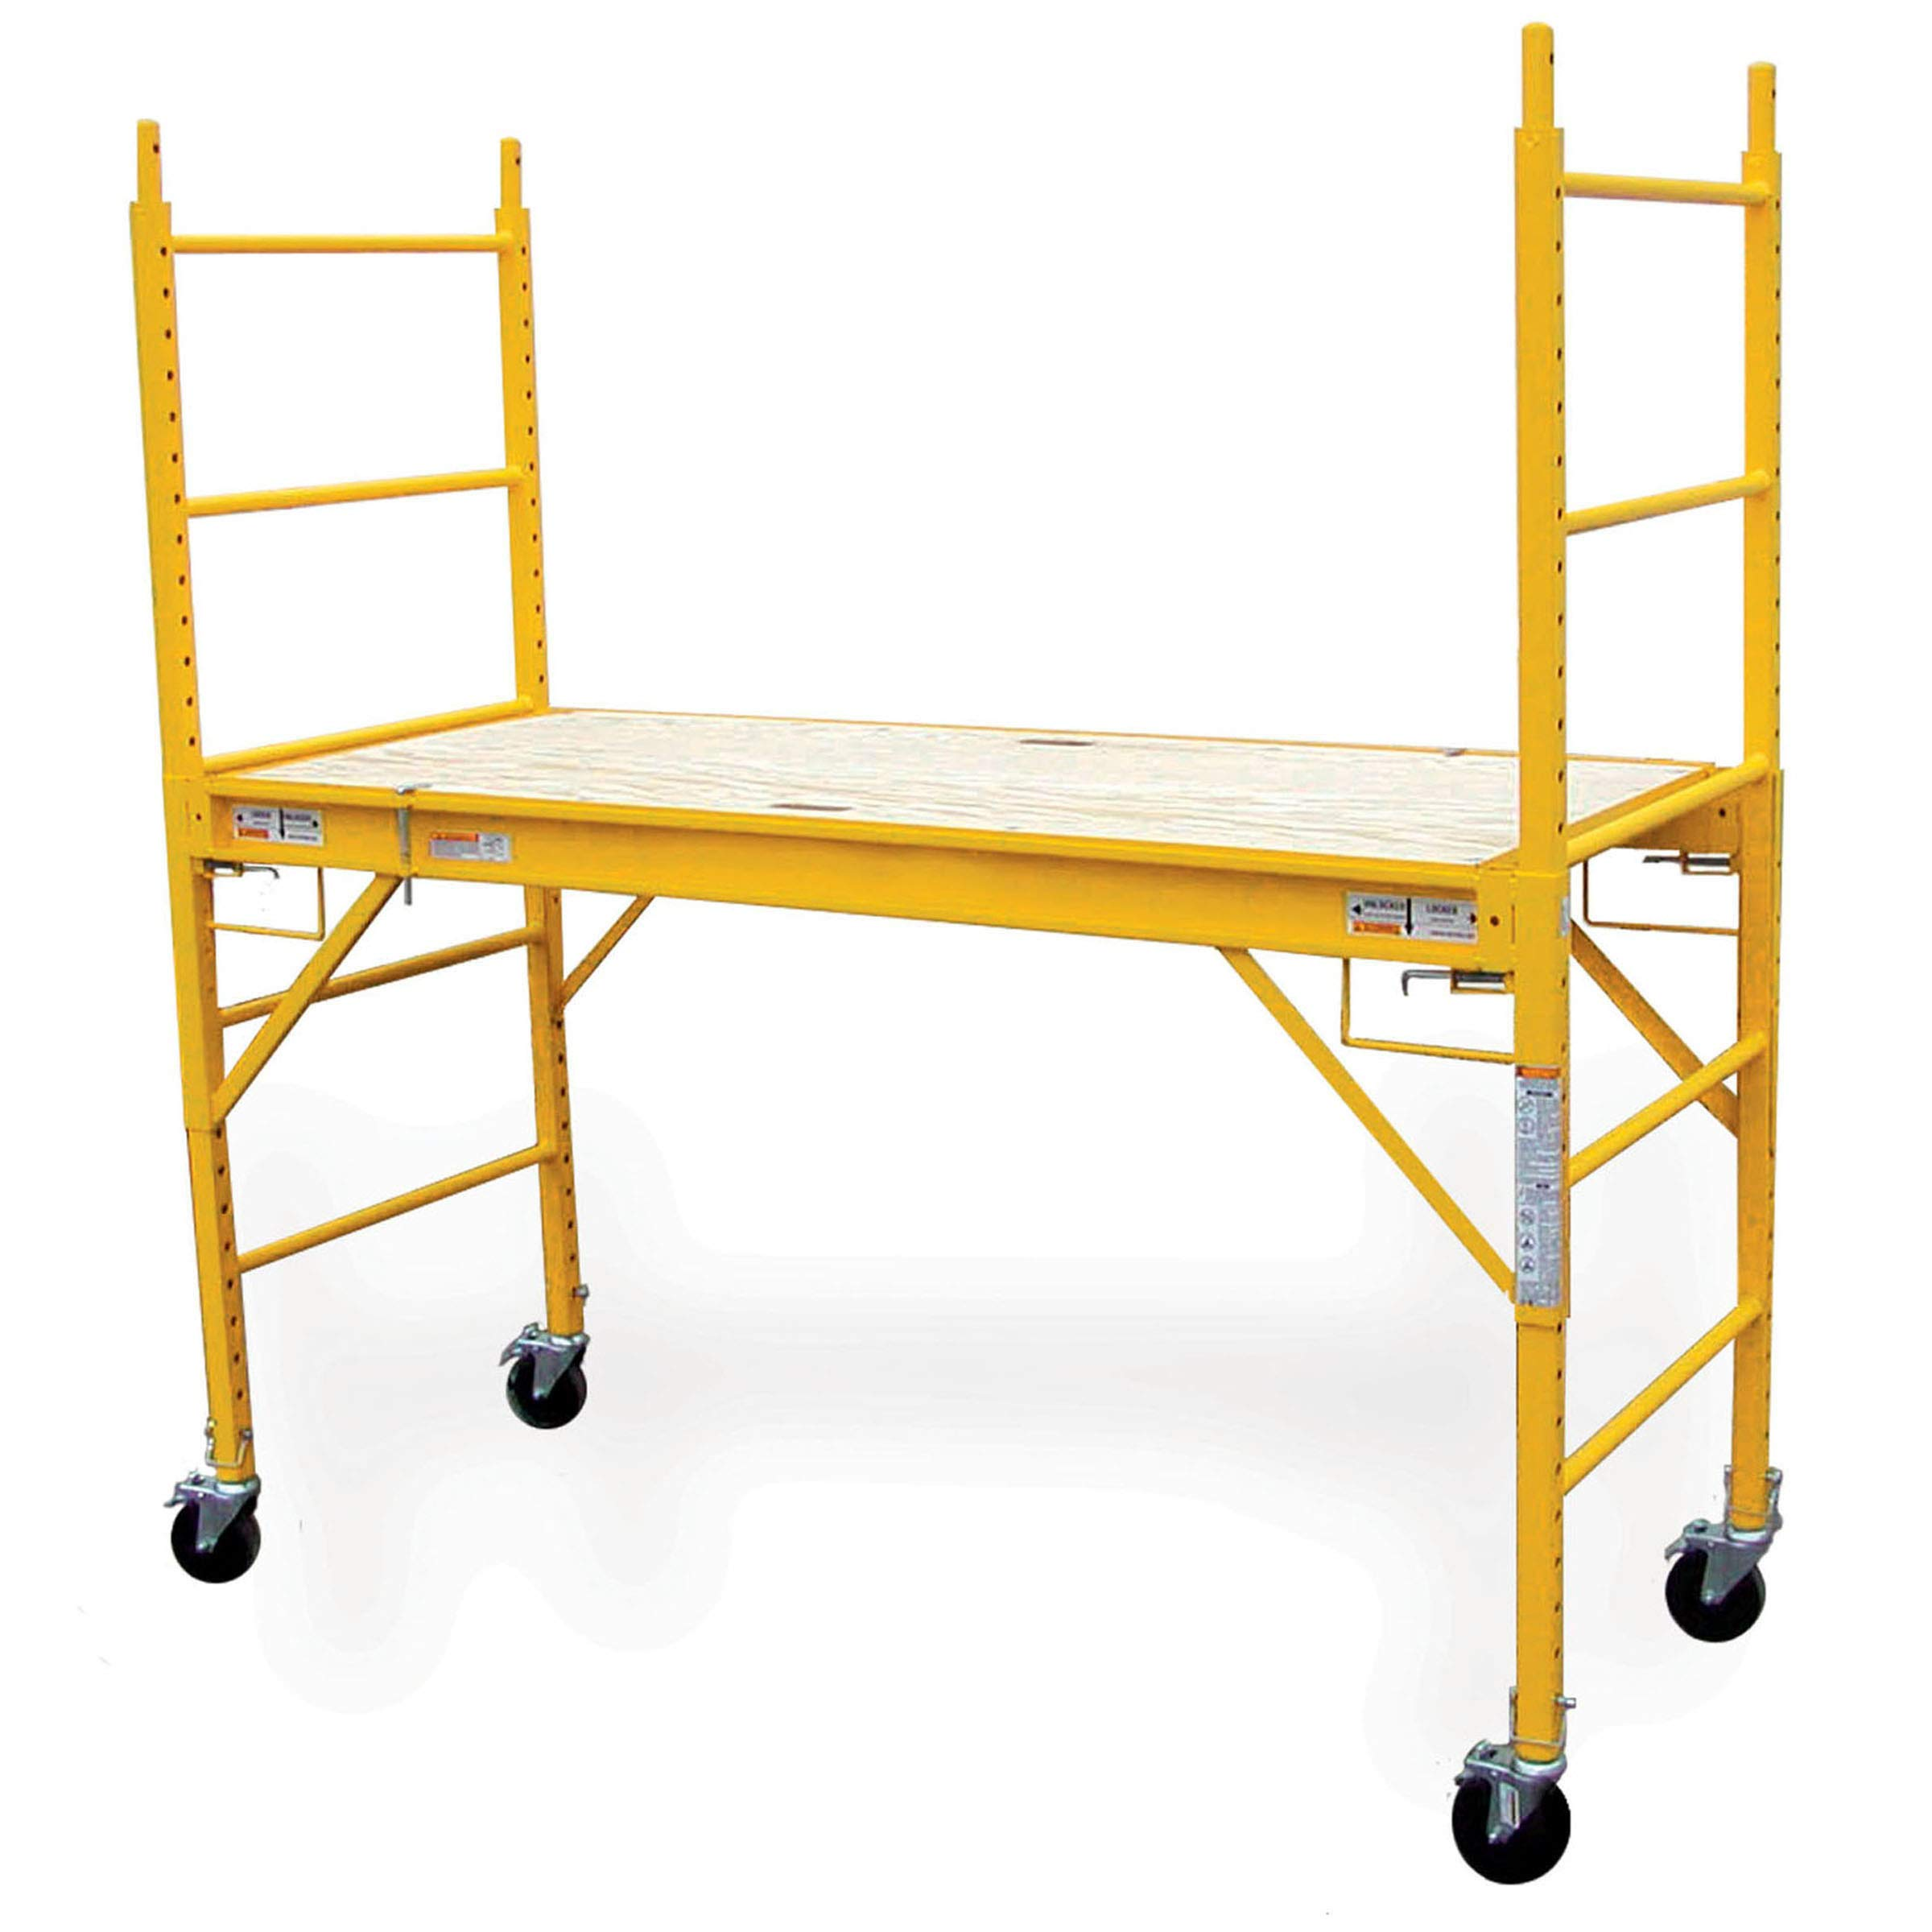 Pro-Series GSSI Multi Purpose Scaffolding, 6-Feet by Pro-series